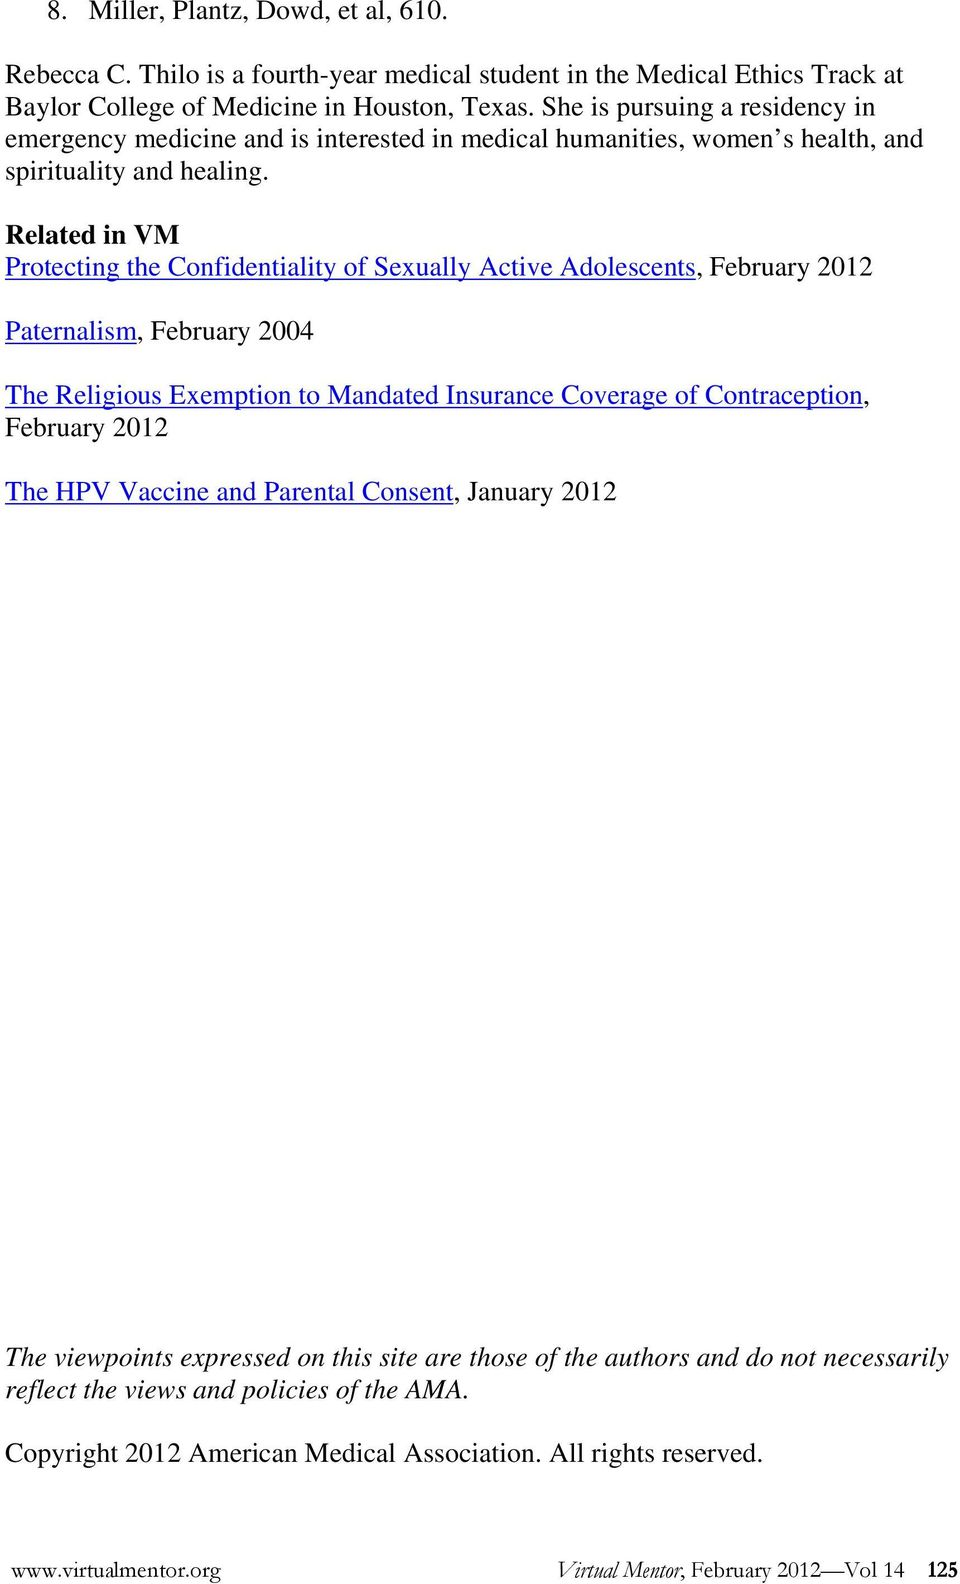 Related in VM Protecting the Confidentiality of Sexually Active Adolescents, February 2012 Paternalism, February 2004 The Religious Exemption to Mandated Insurance Coverage of Contraception, February